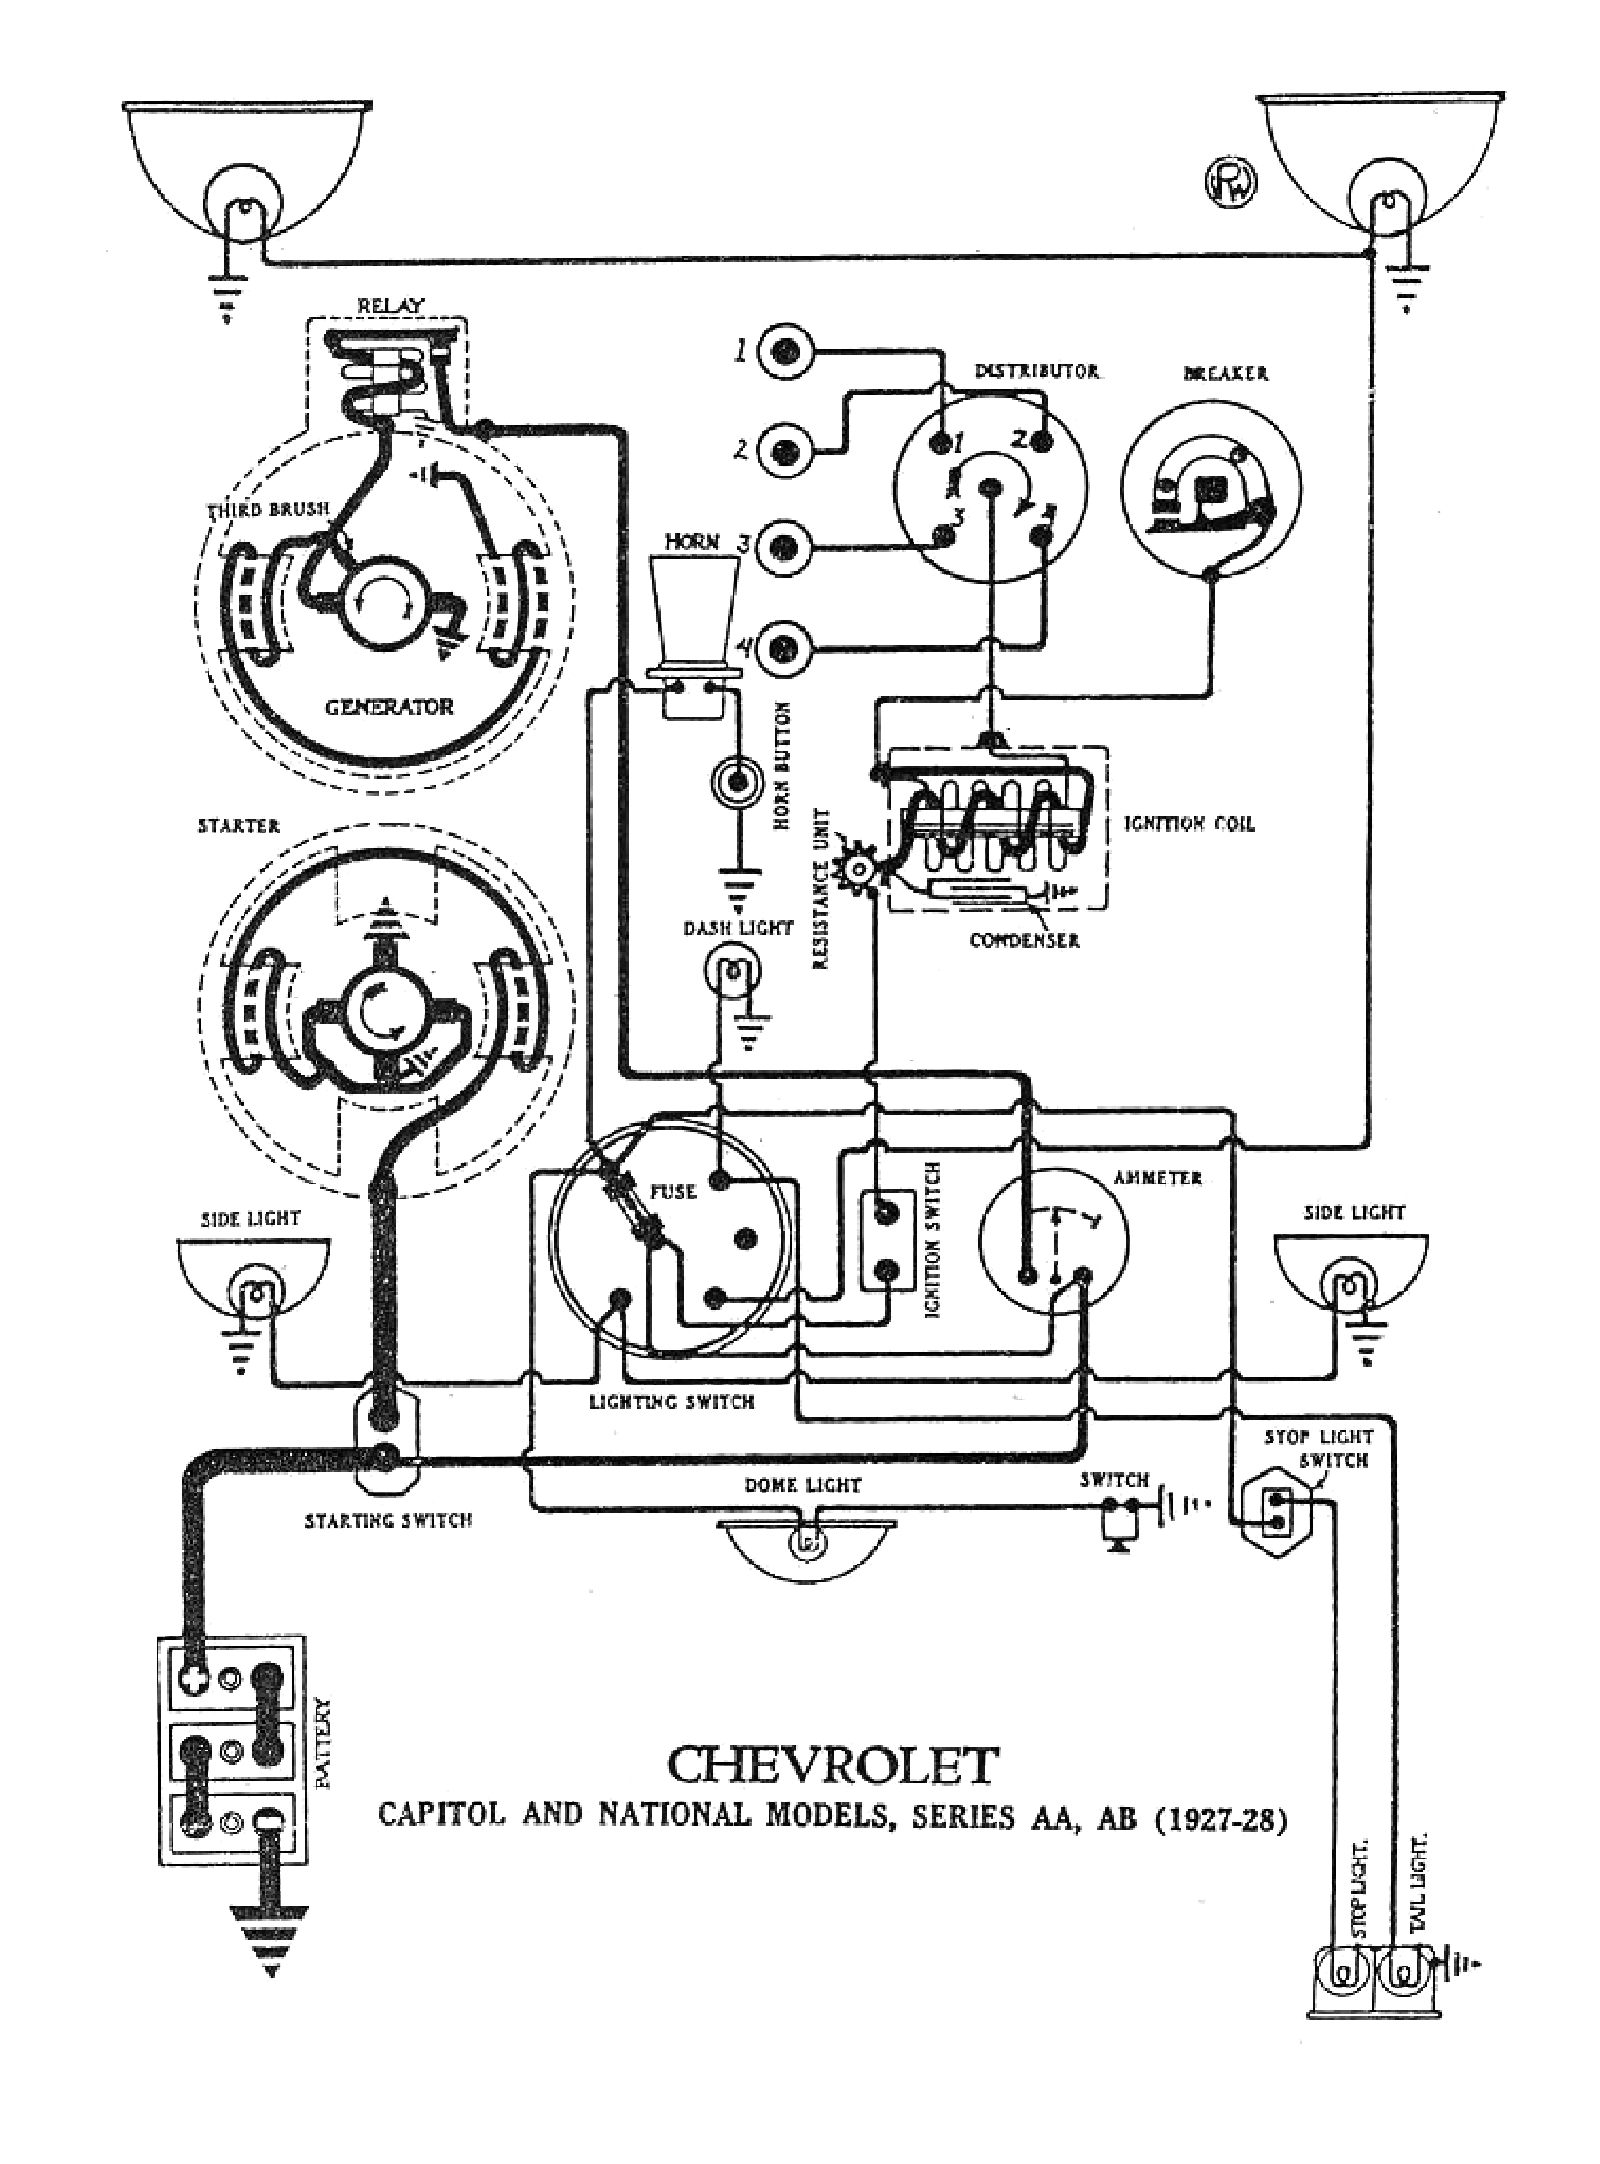 2728wiring buick wiring diagrams free free motorcycle wiring diagrams \u2022 free Ford Model T at soozxer.org